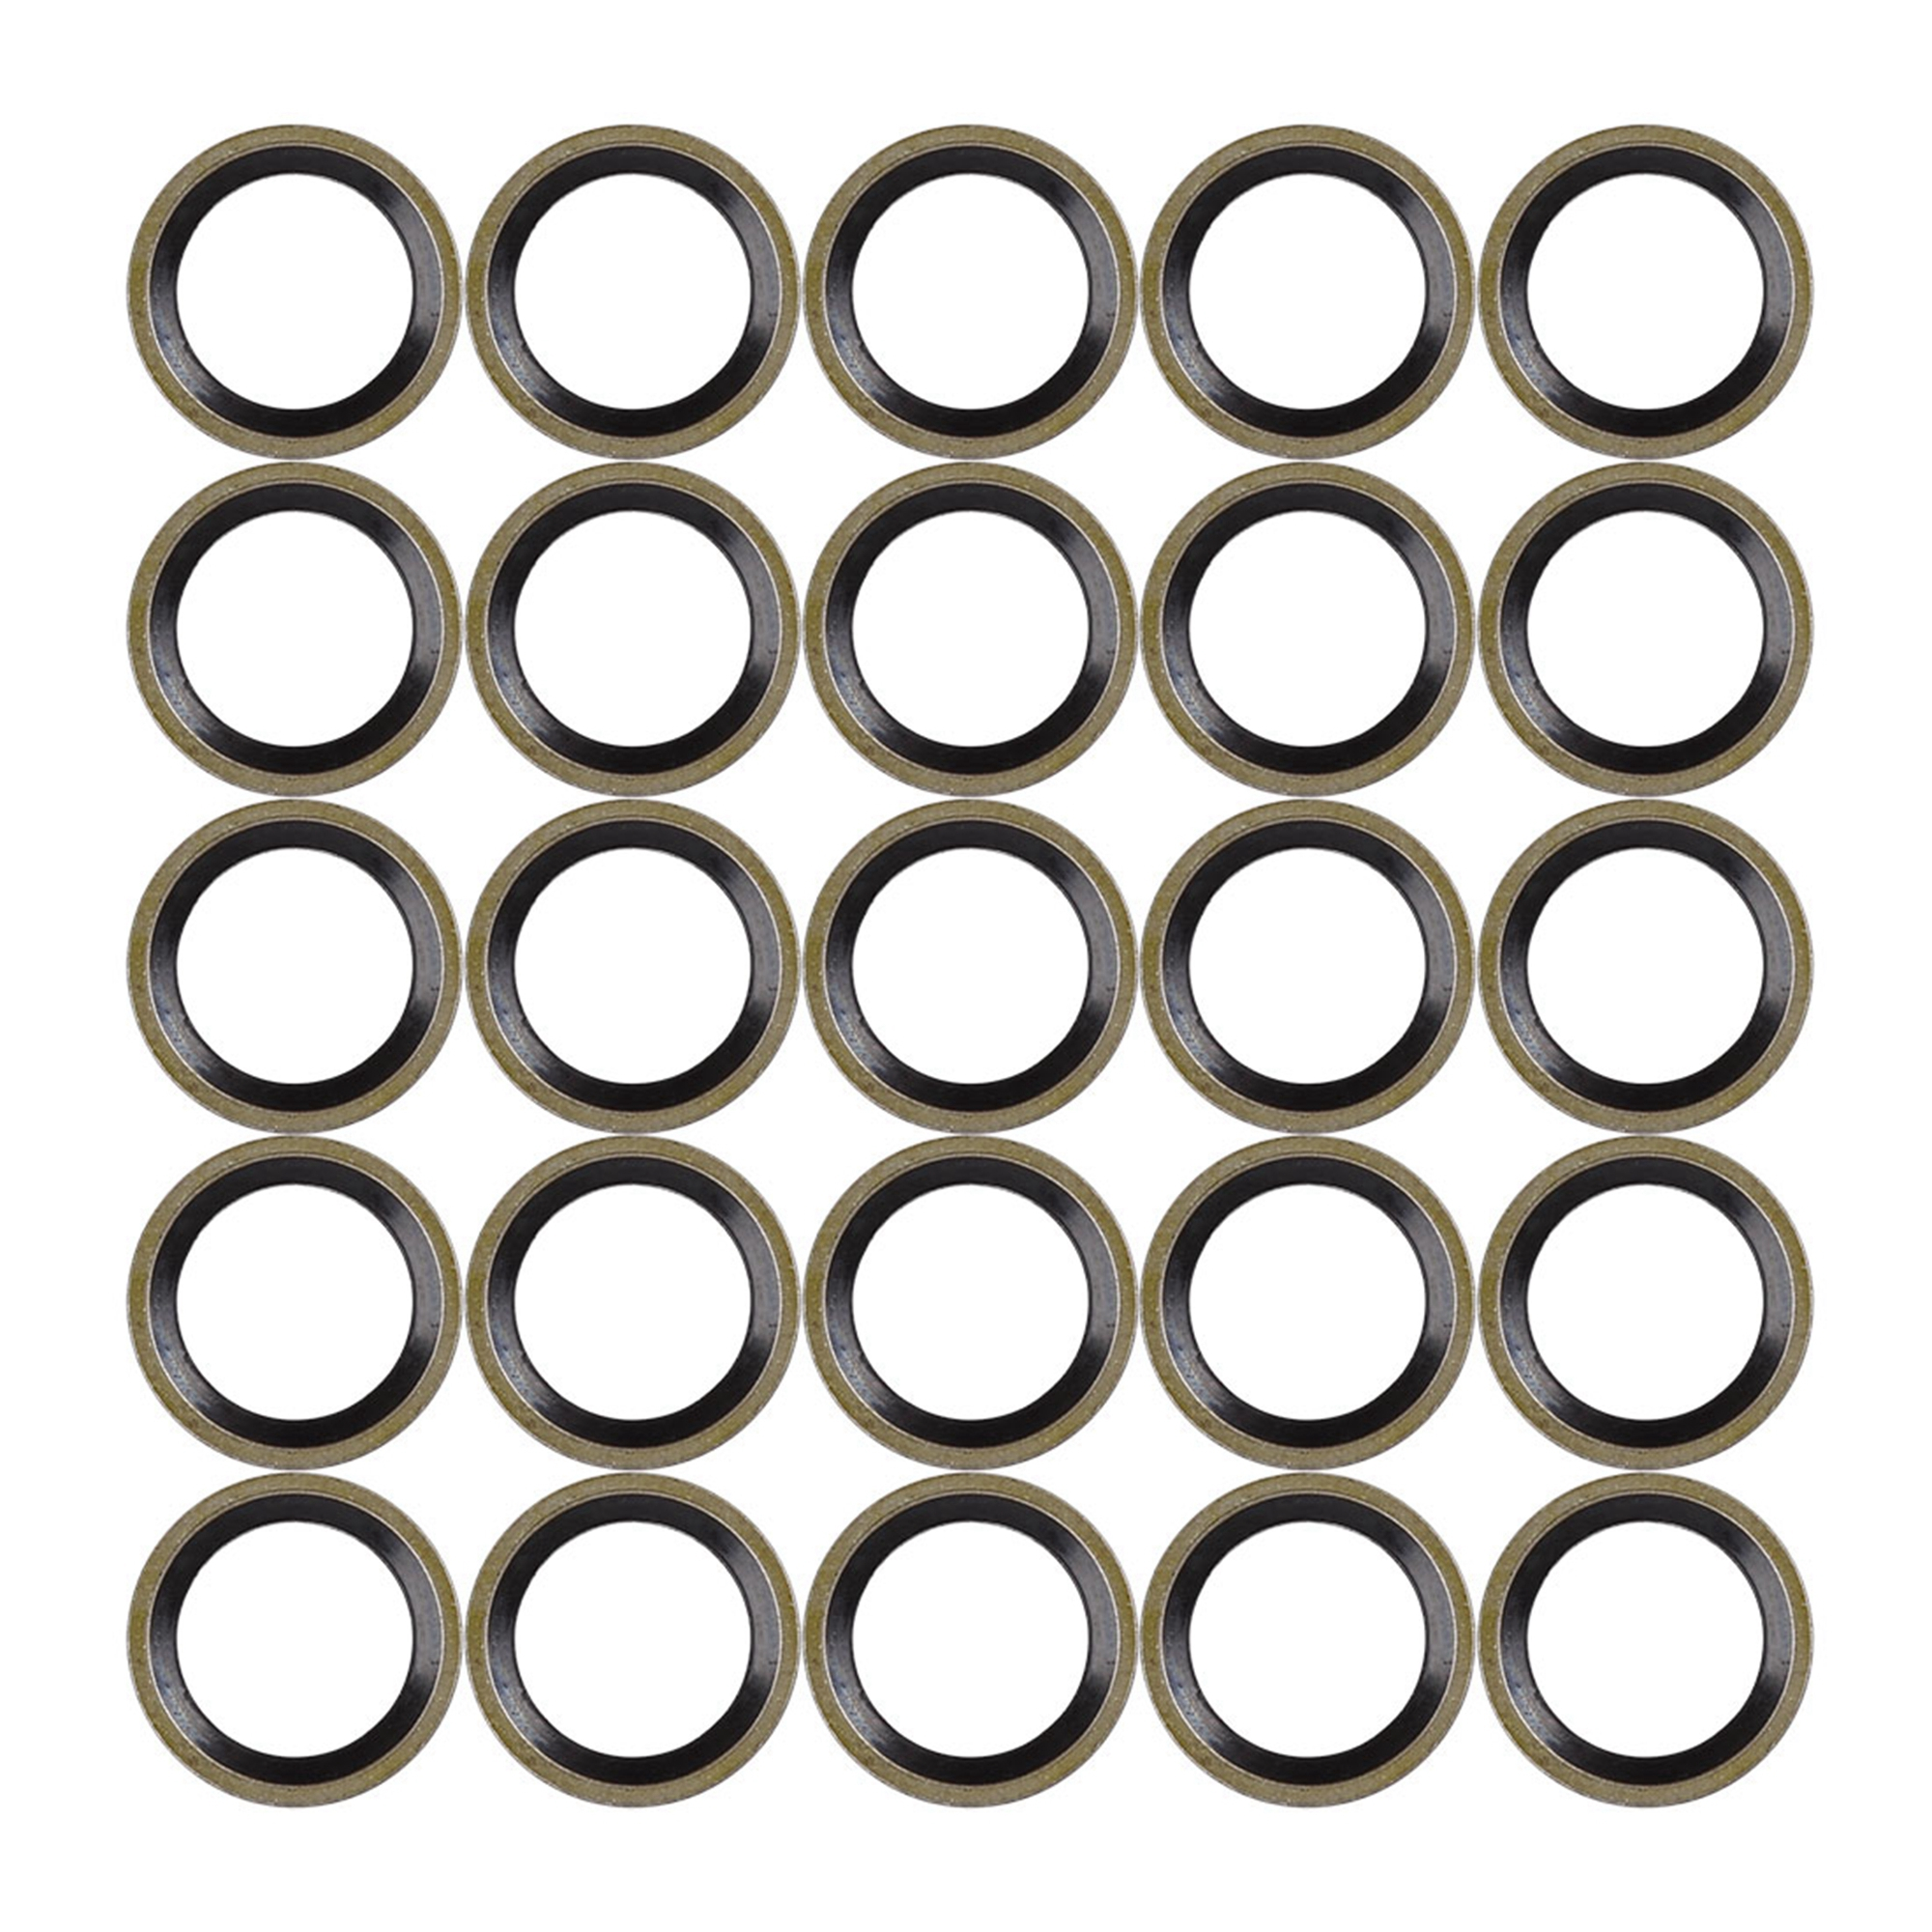 25pcs M12 Bronze Tone Car Engine Oil Drain Crush Flat Bonded Washer Gaskets